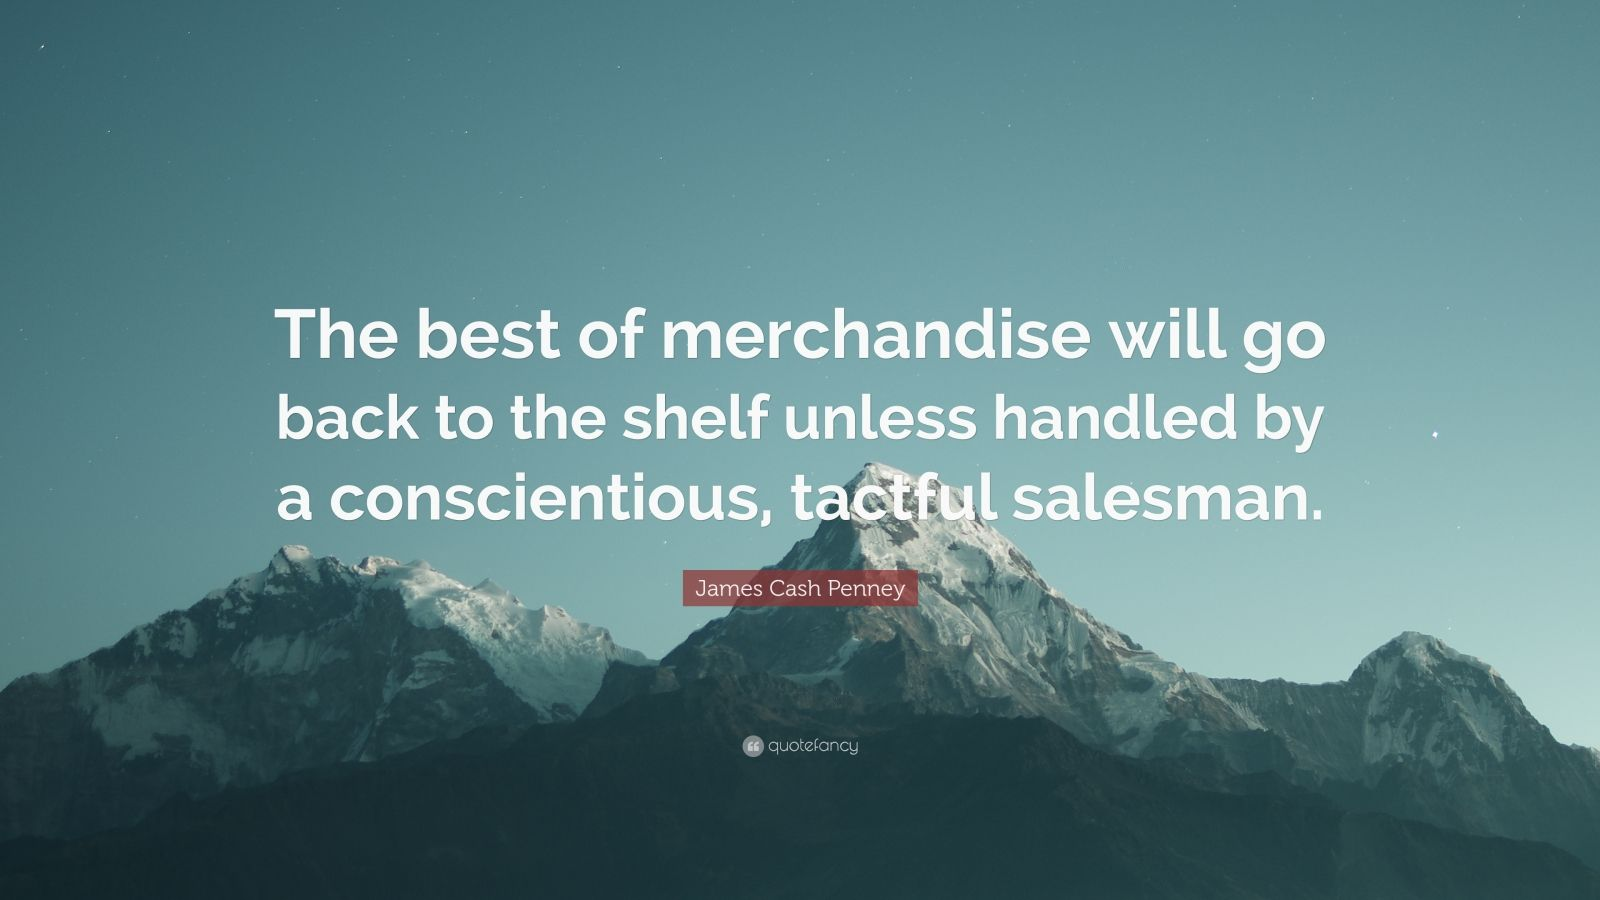 """James Cash Penney Quote: """"The best of merchandise will go back to the shelf unless handled by a conscientious, tactful salesman."""""""